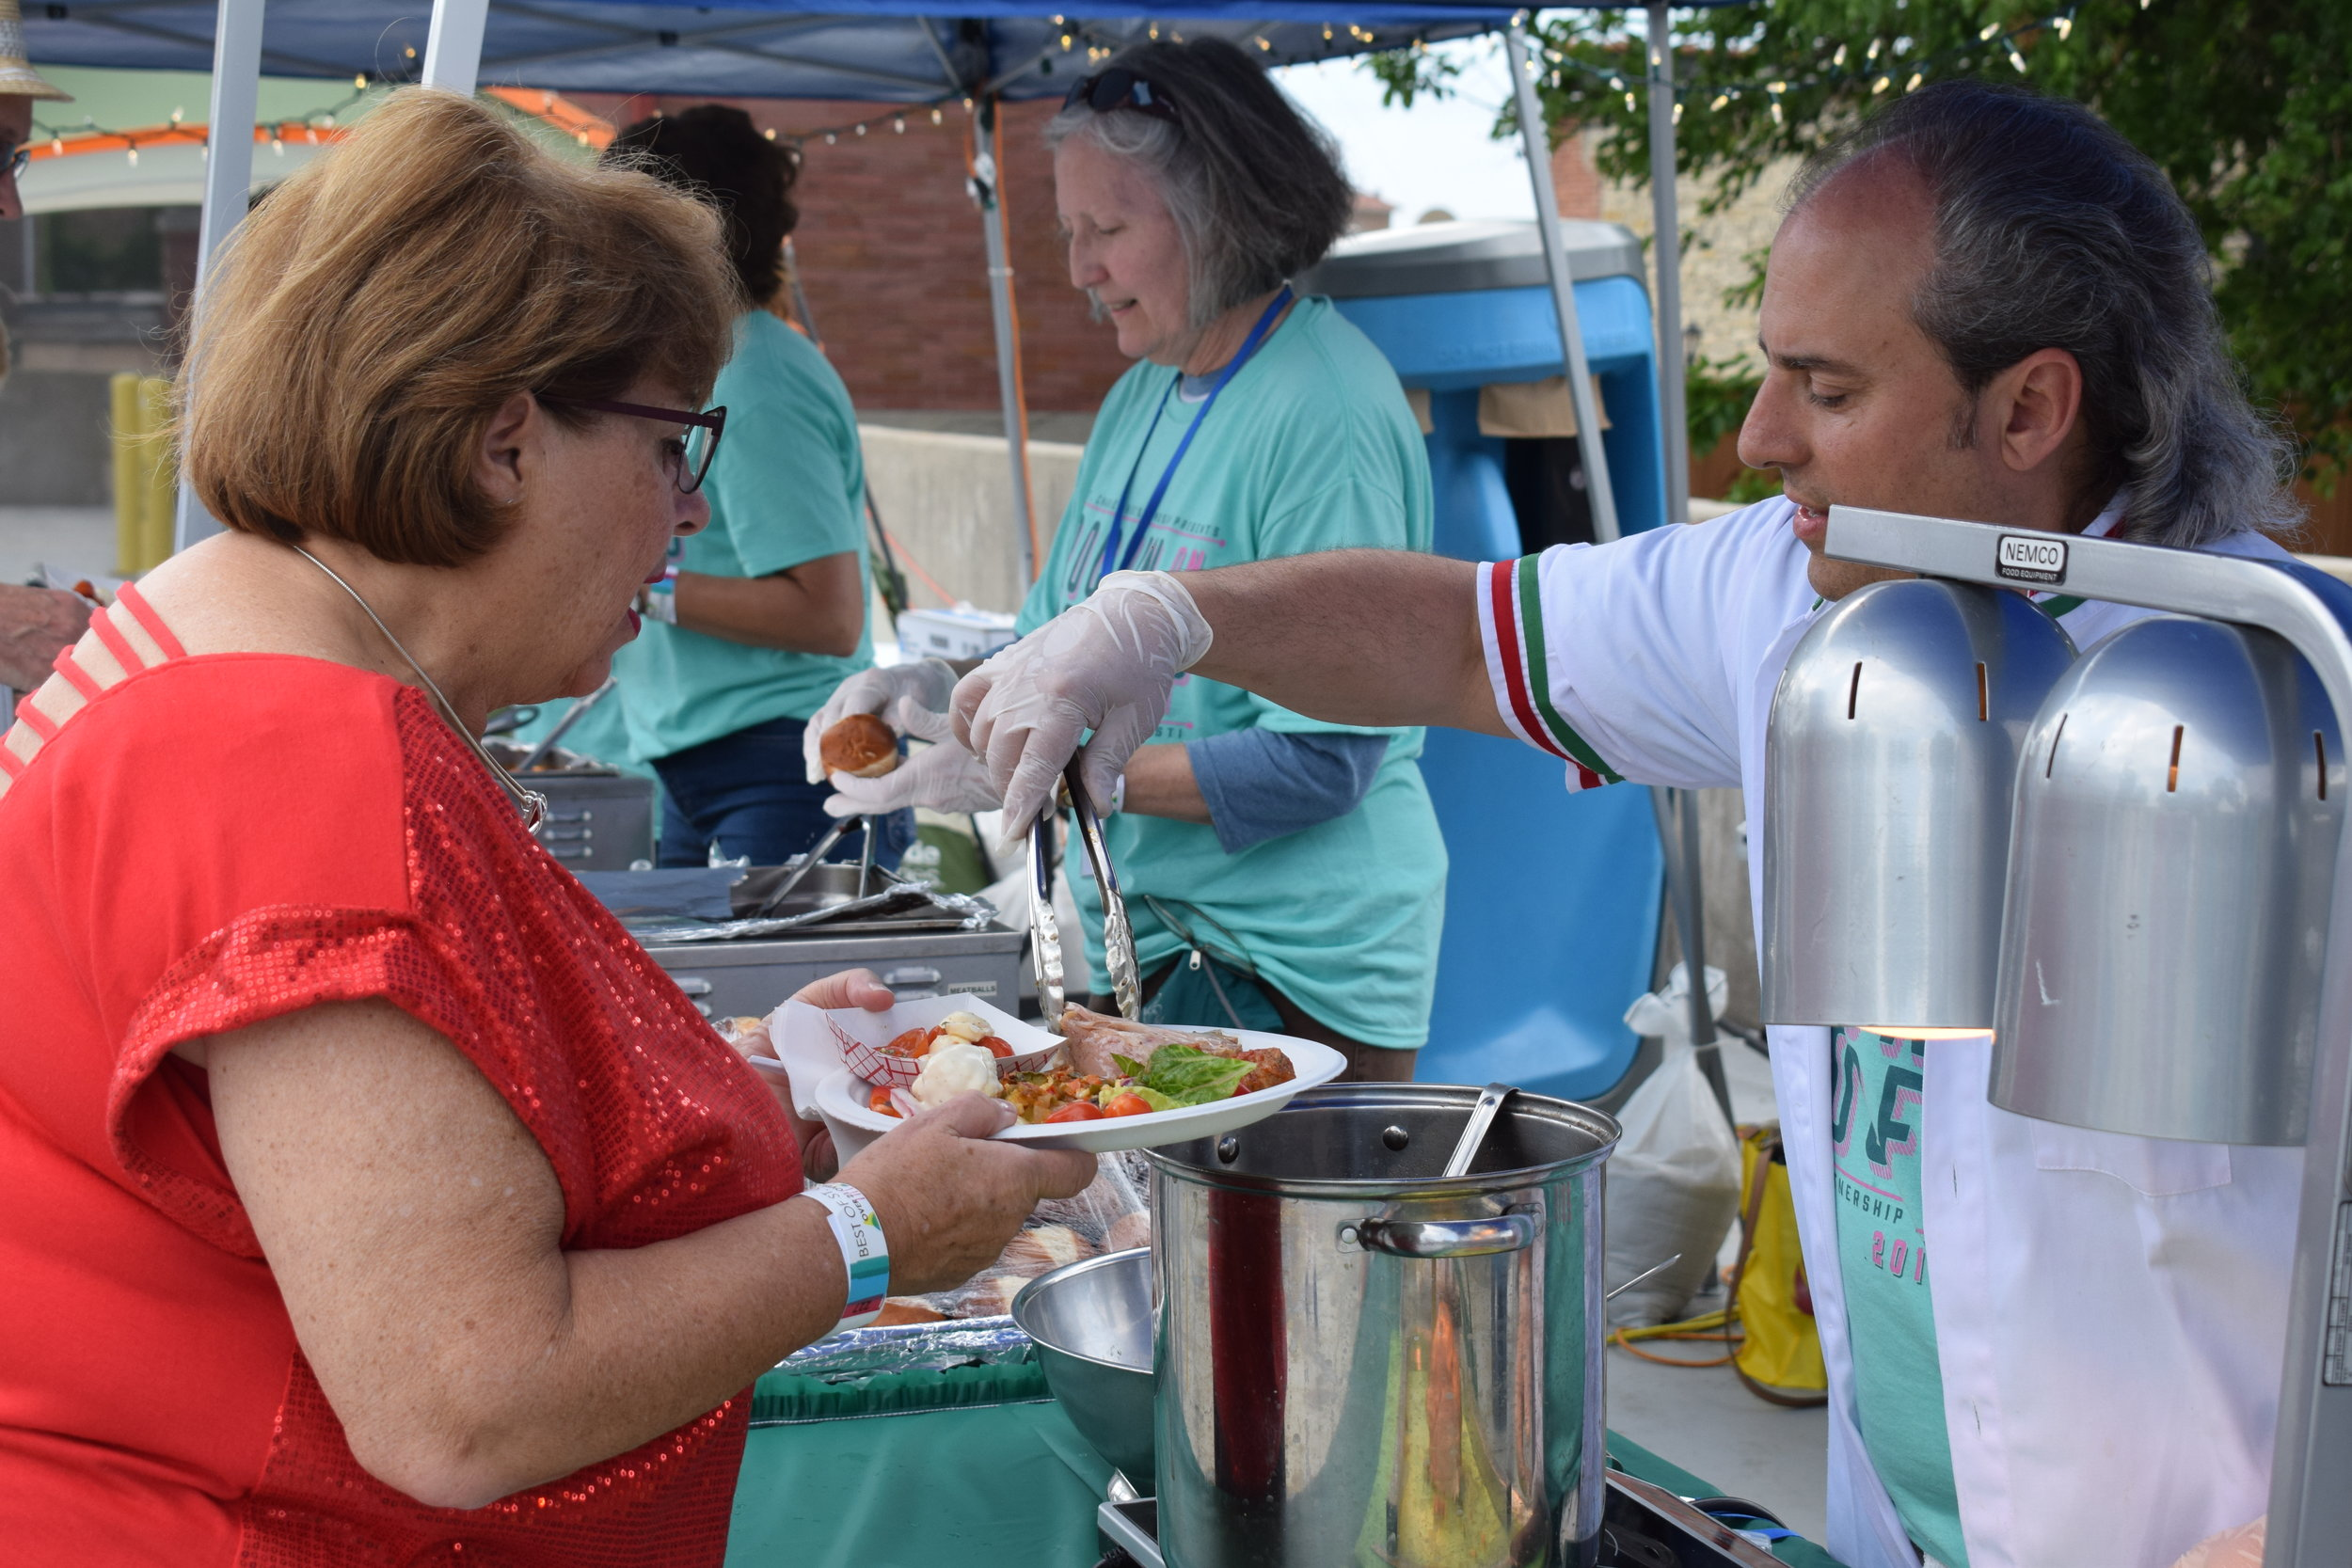 Food for the event was generously provided by Ron Onesti and Club Arcada